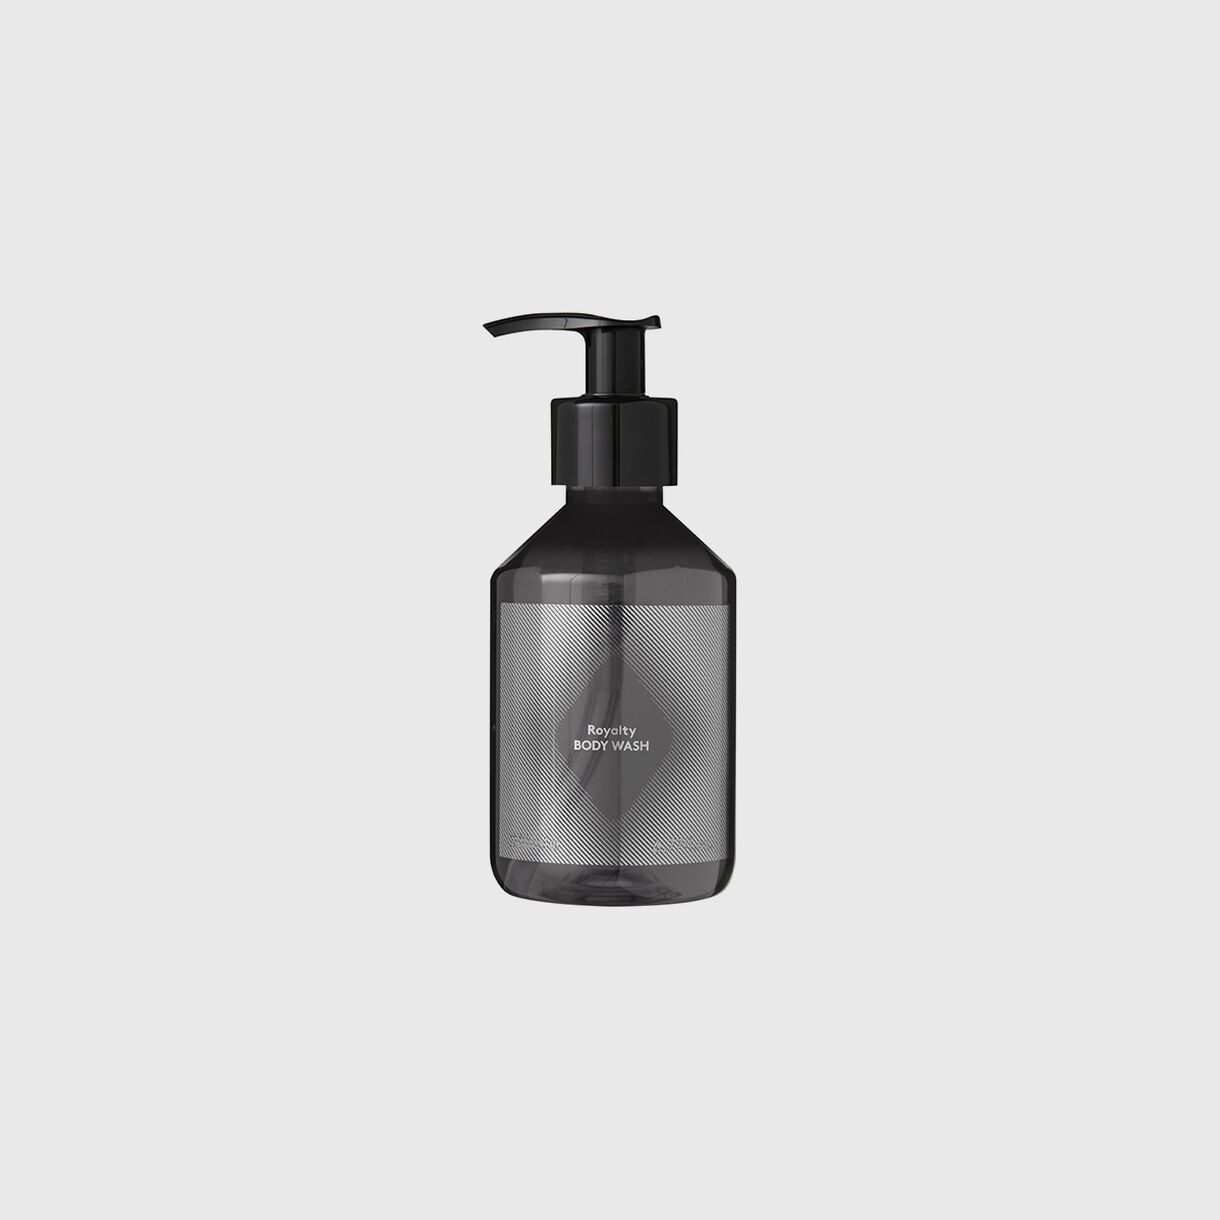 Eclectic Royalty Body Wash, 200ml